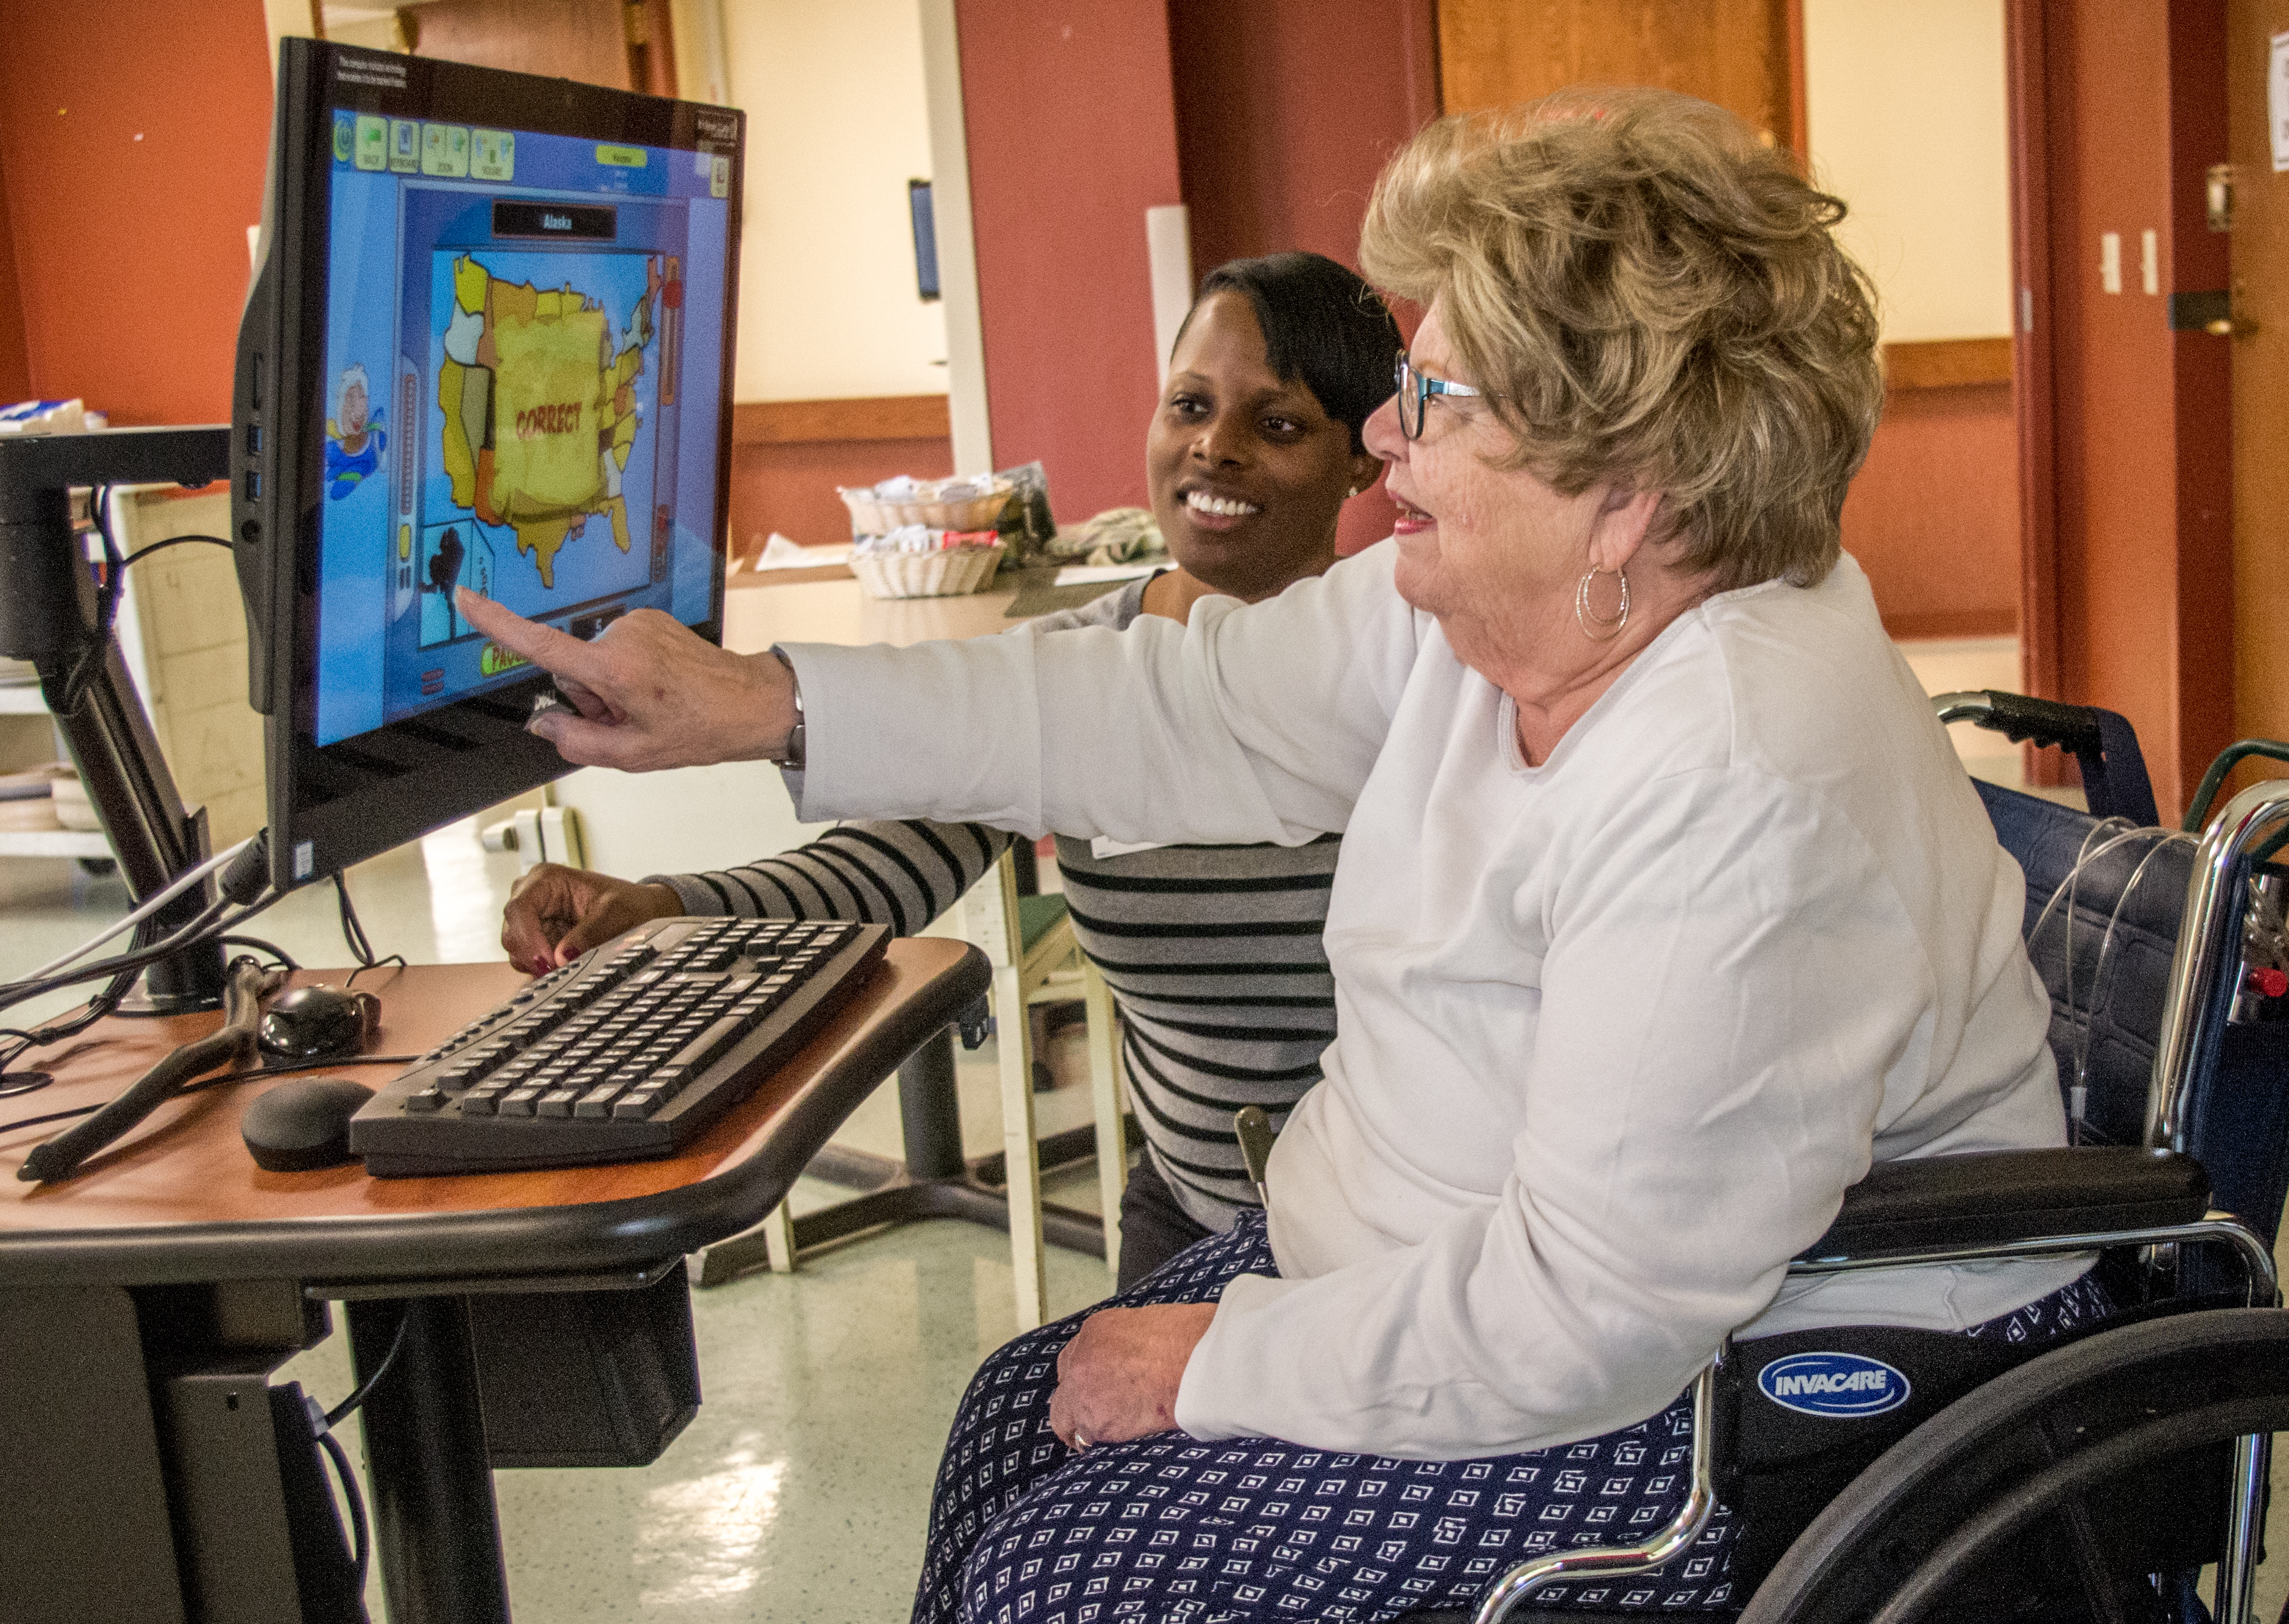 Bethesda resident Patricia Stirlen using the iN2L computer system for seniors at Bethesda Meadow.